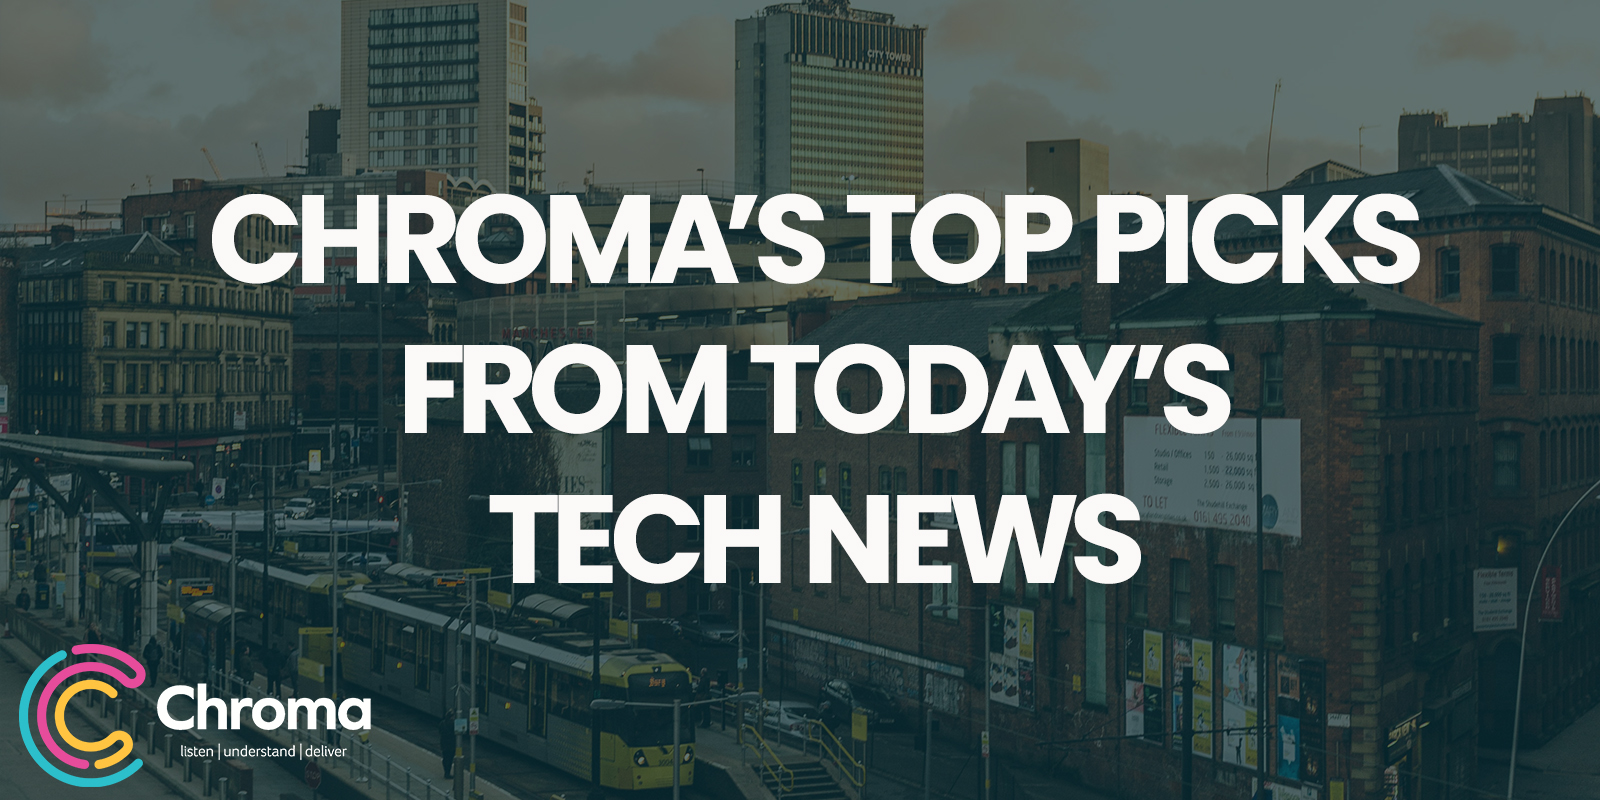 Chroma's top picks from today's tech news